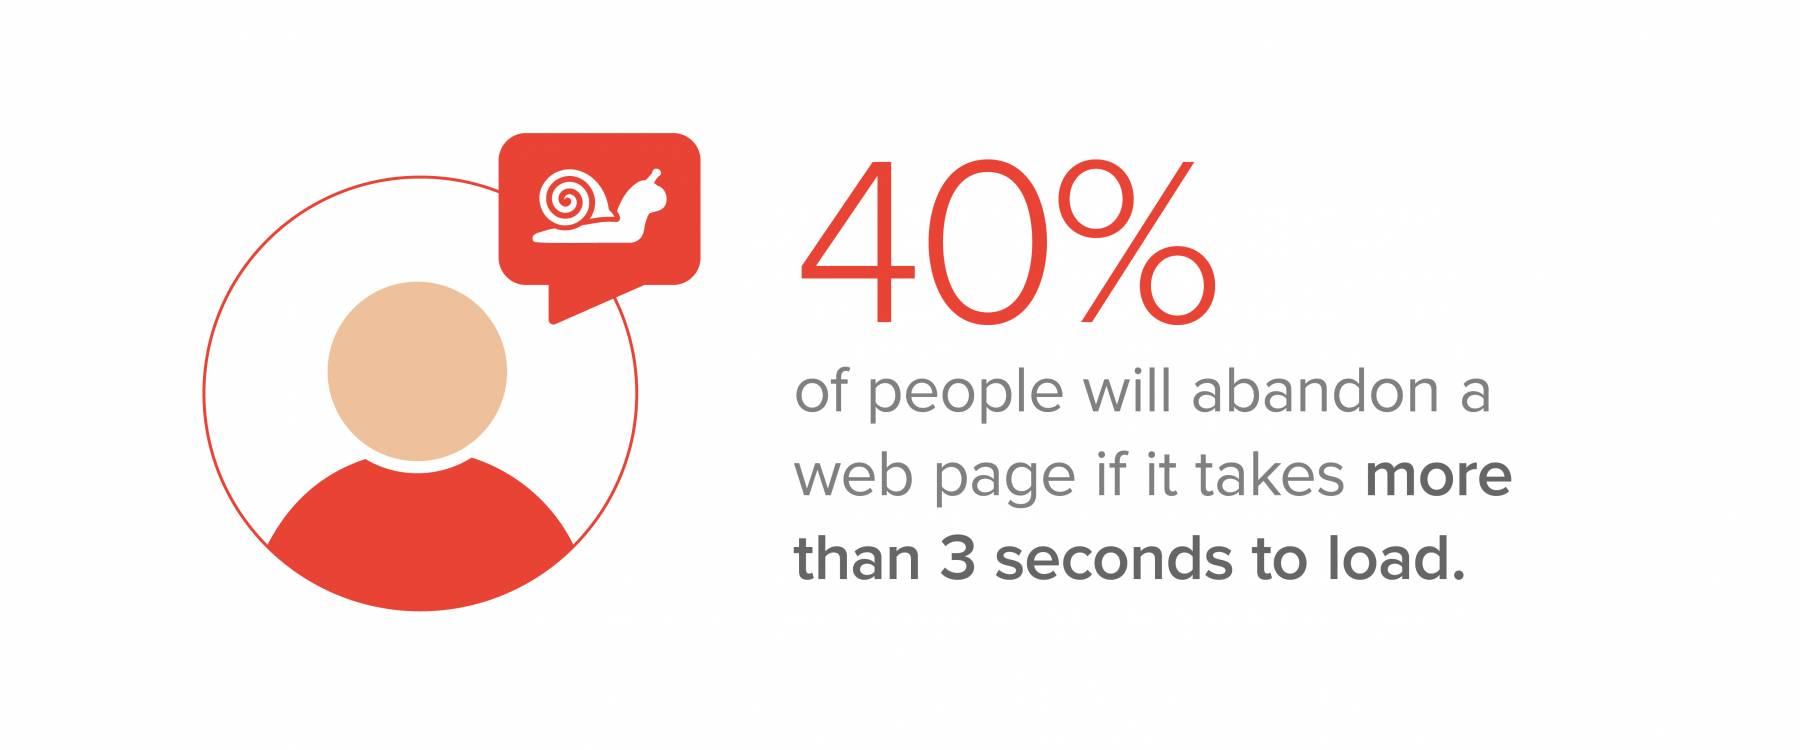 40% of people will abandon a web page if it takes more than 3 seconds to load.